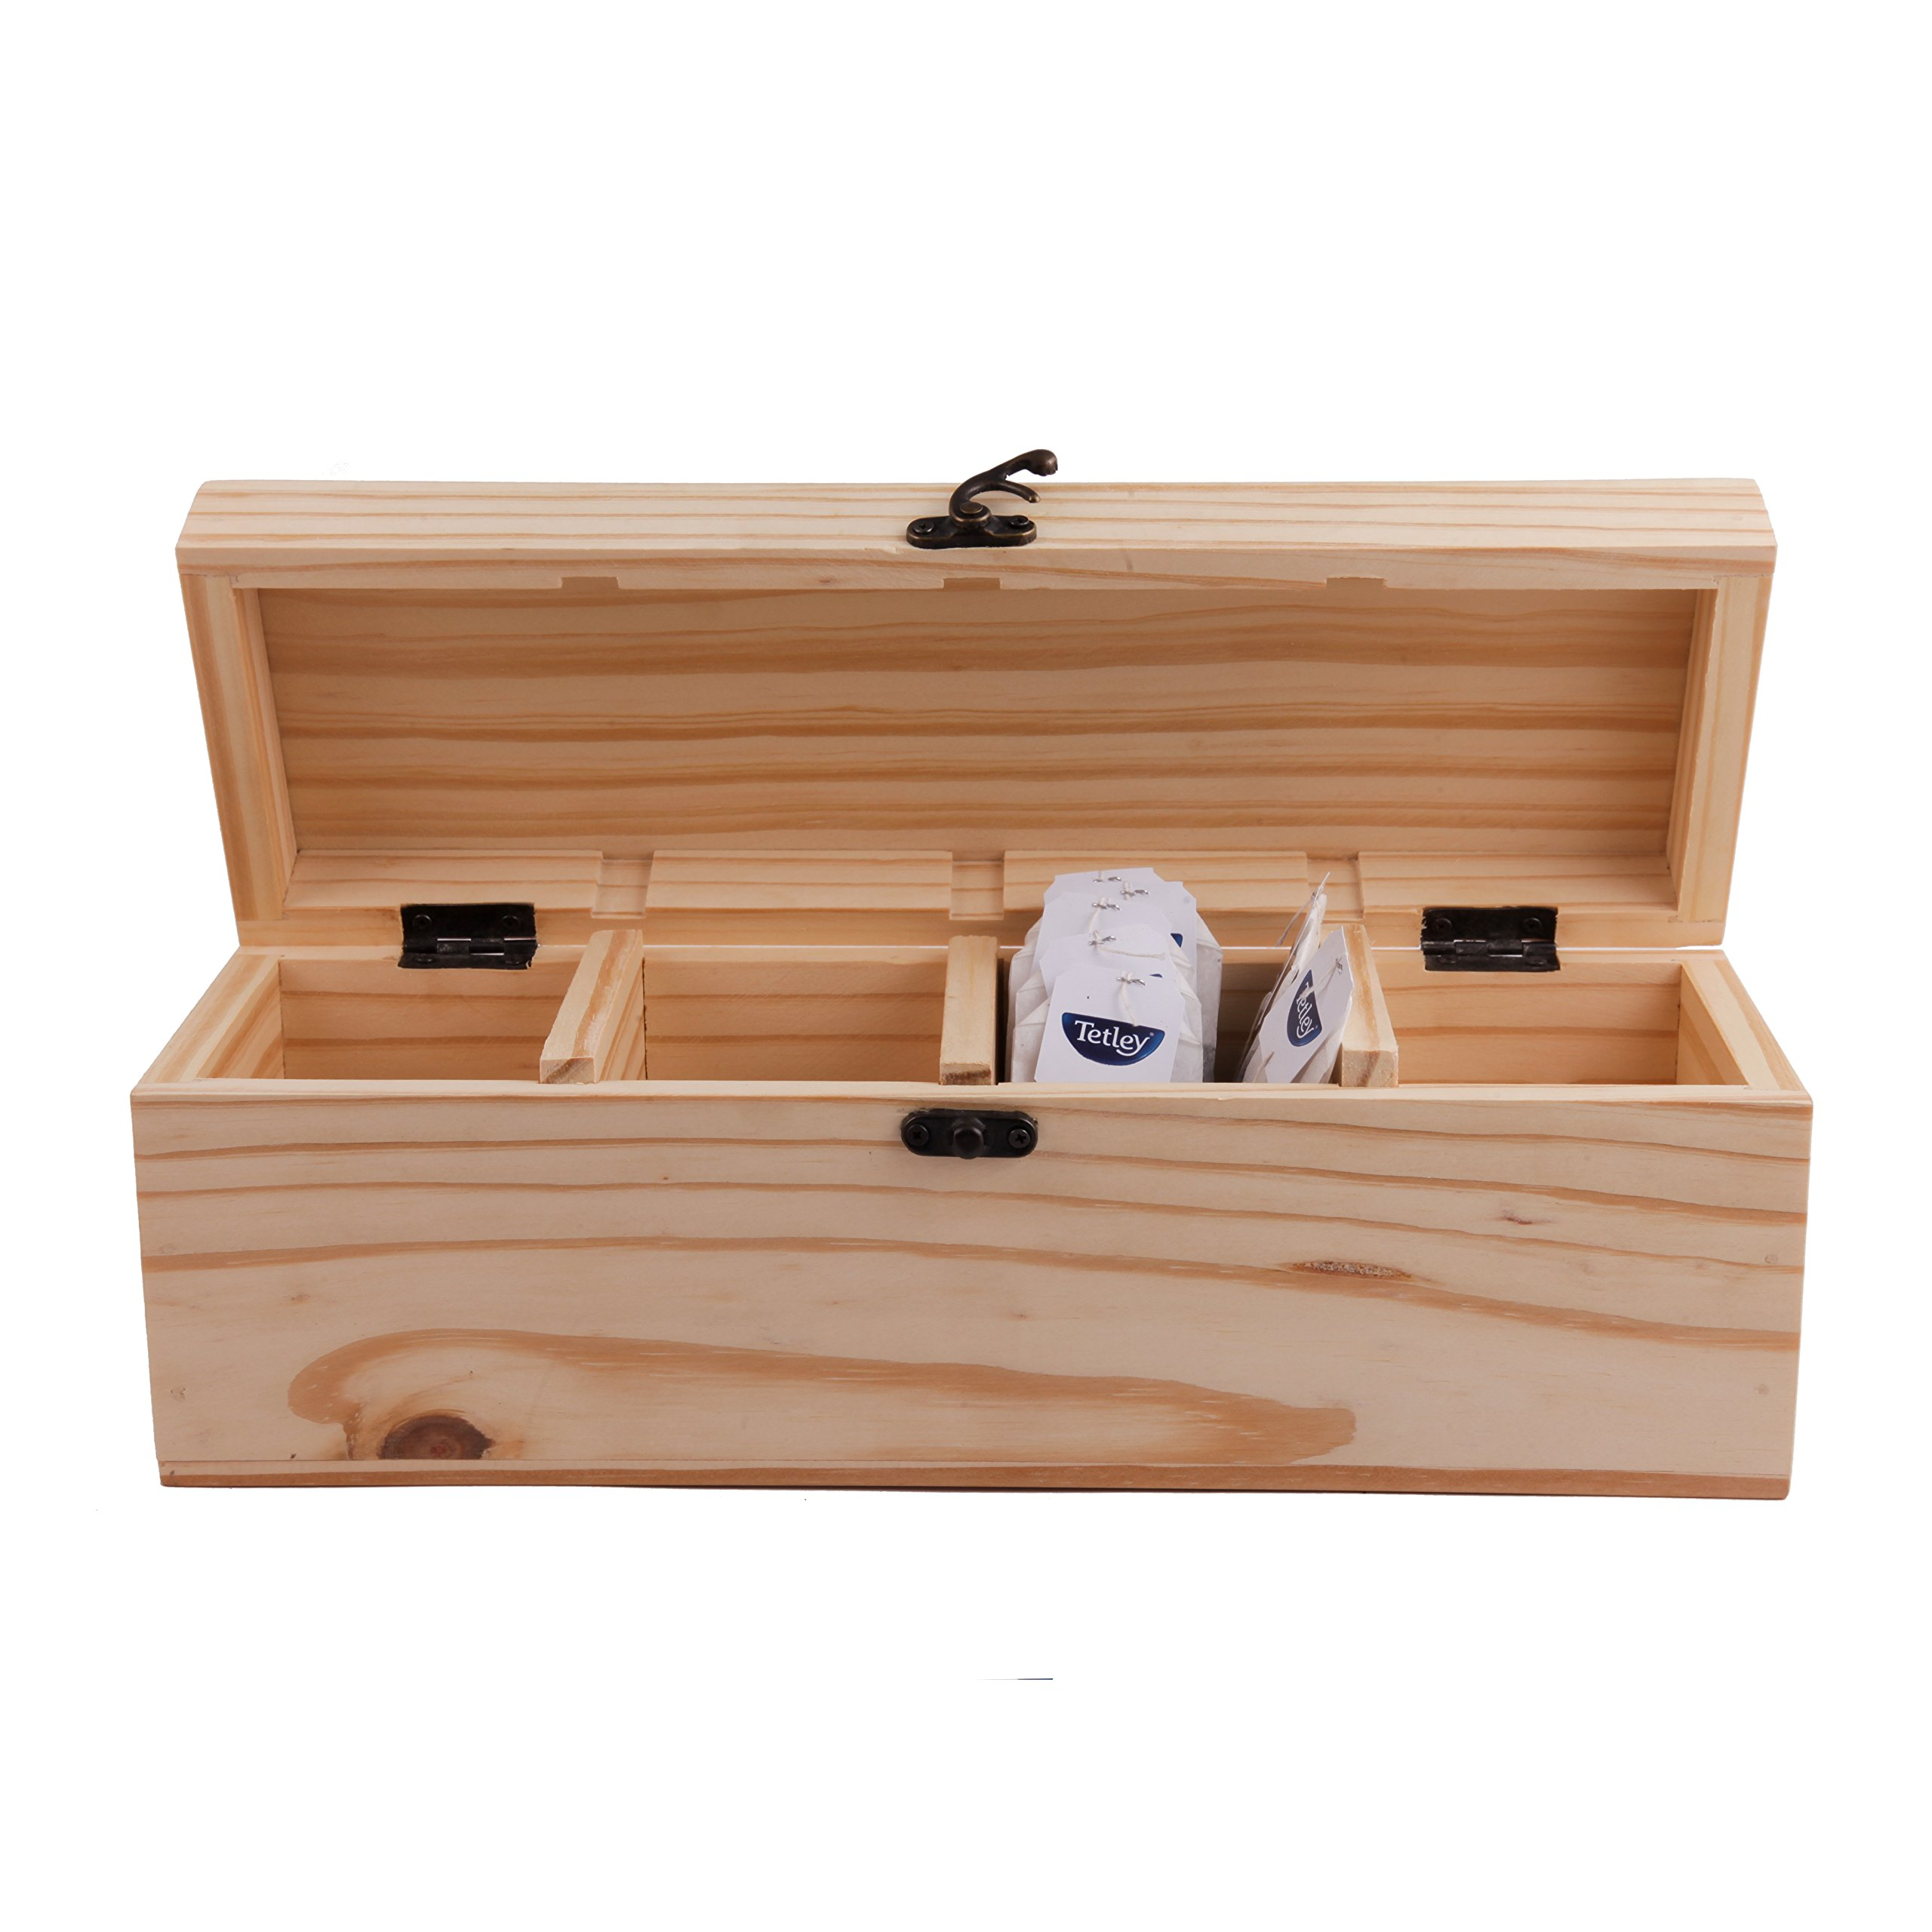 GoCraft Wooden Tea Bag / Spice Storage Box | Pine Wood Tea Chest with 4 Storage Compartments